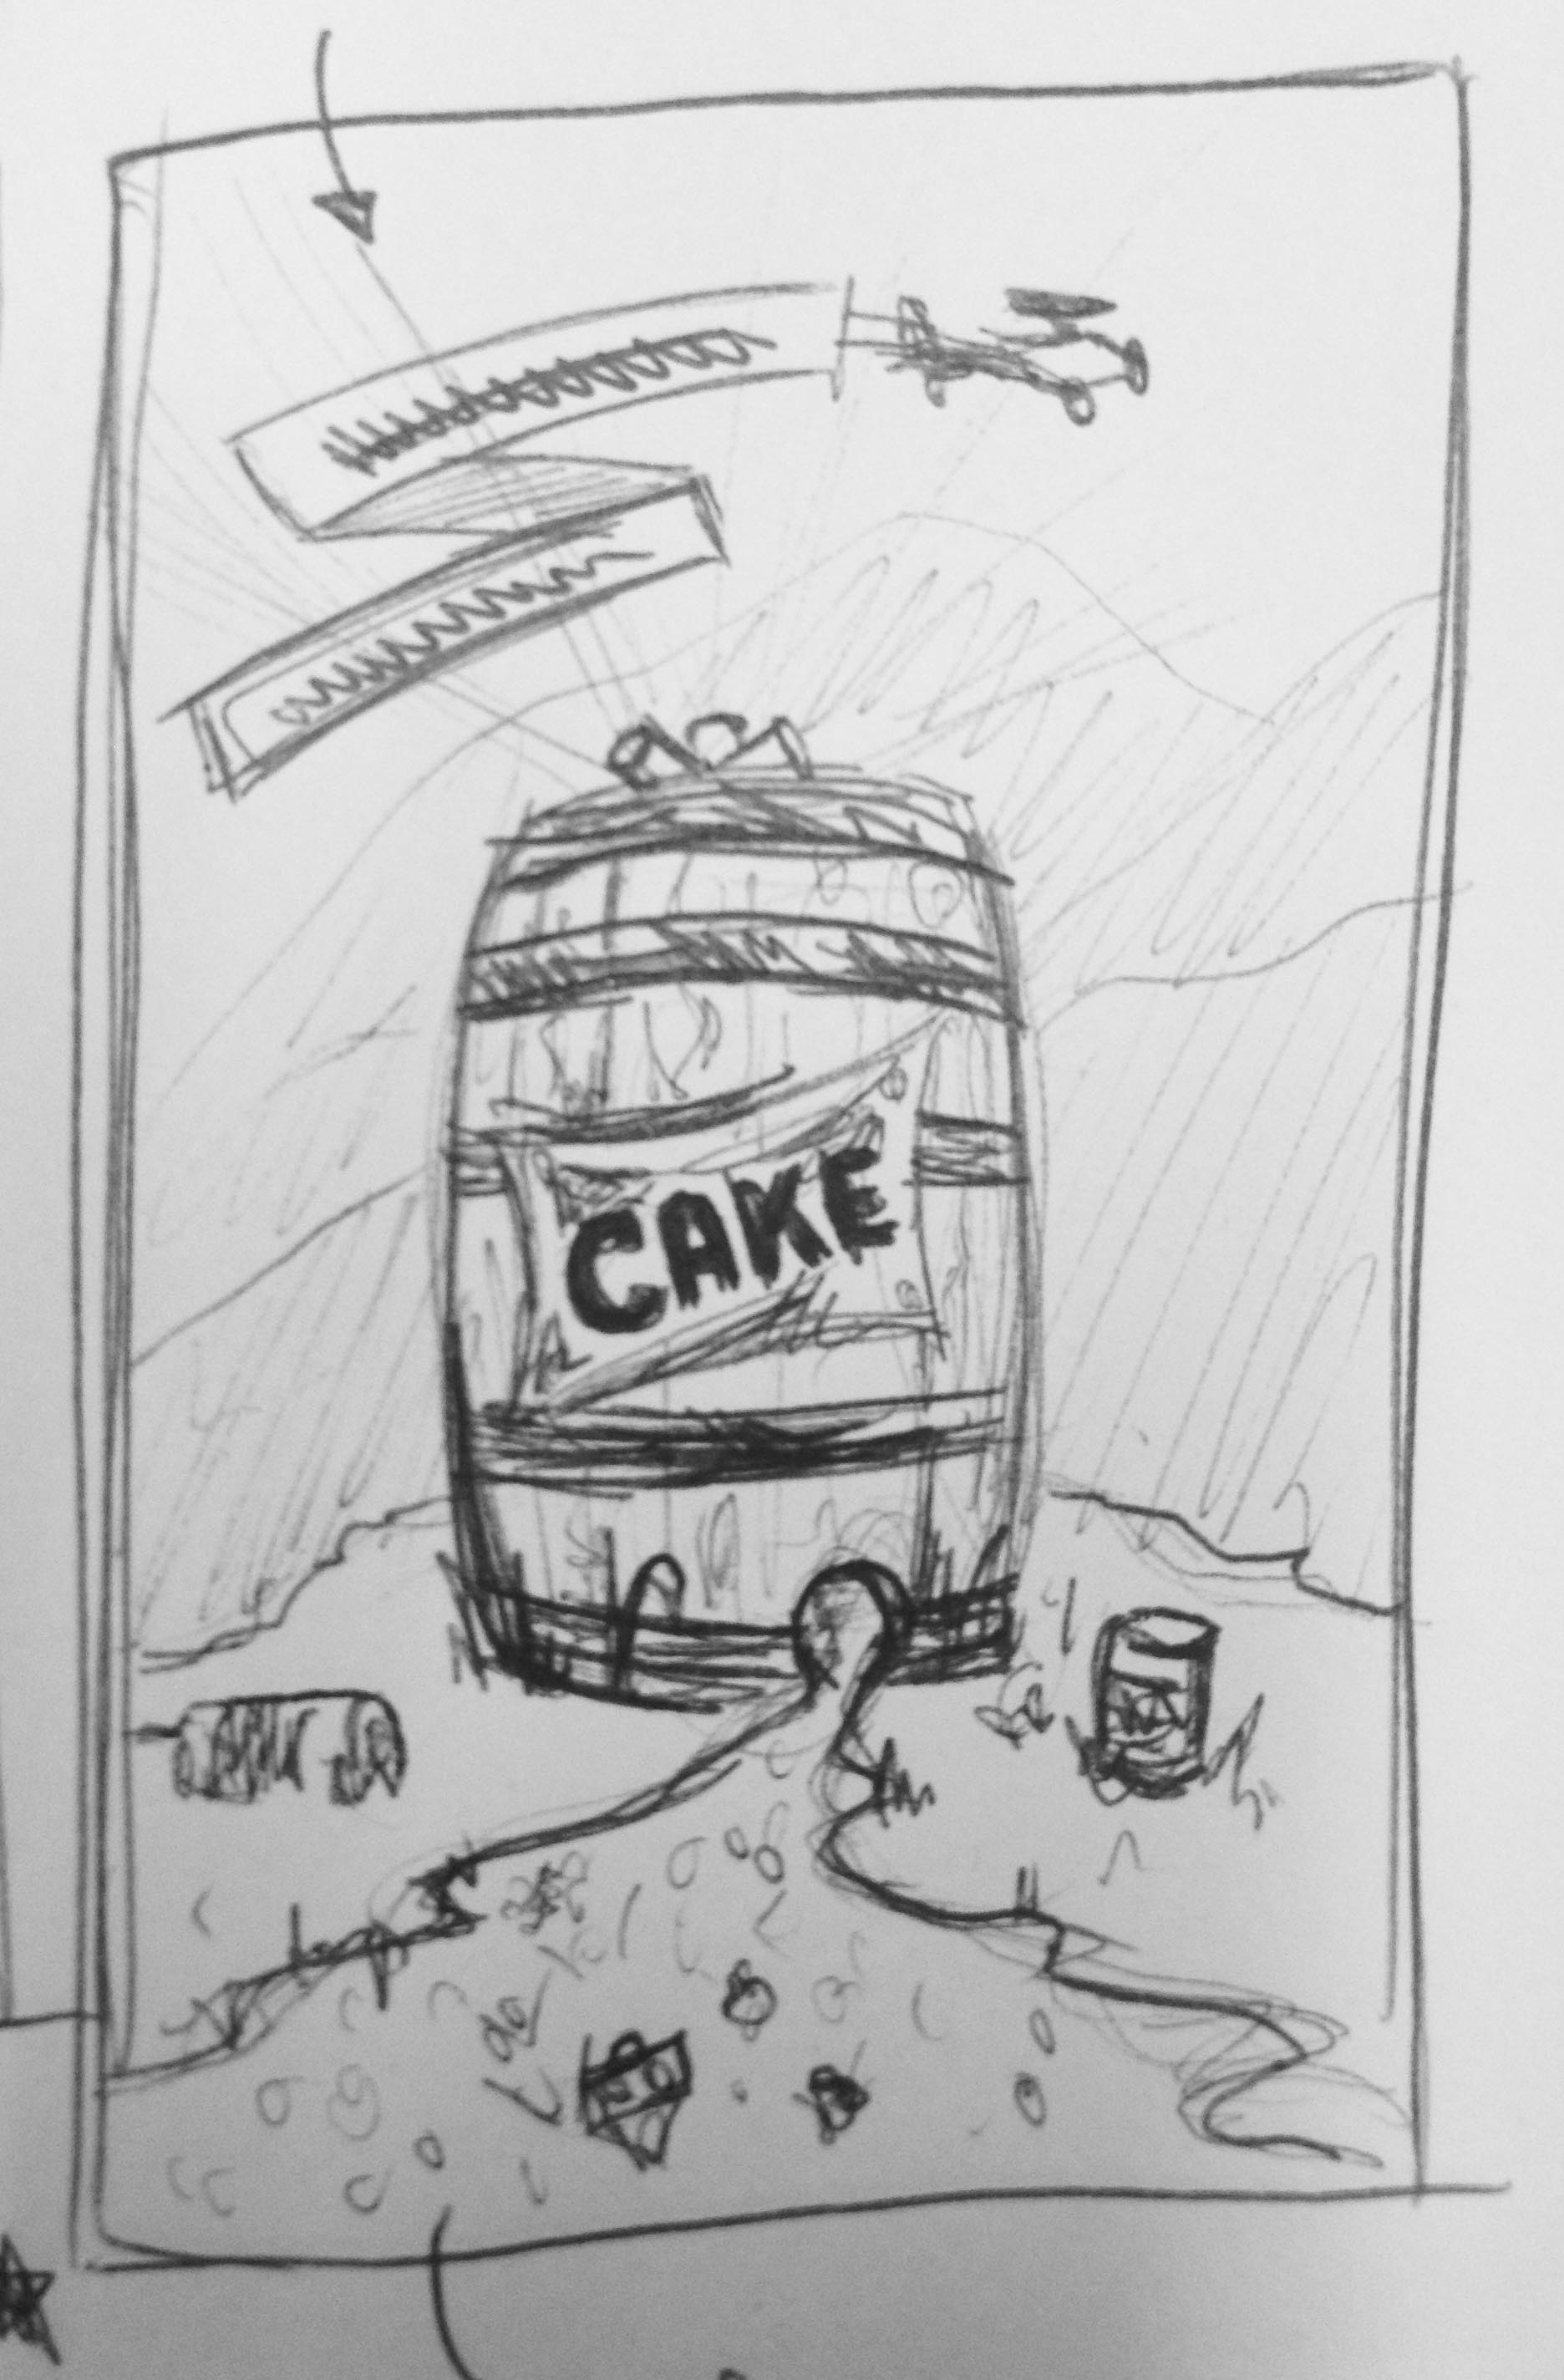 Cake at the Bottle Rock - Napa Valley May 12th - image 27 - student project